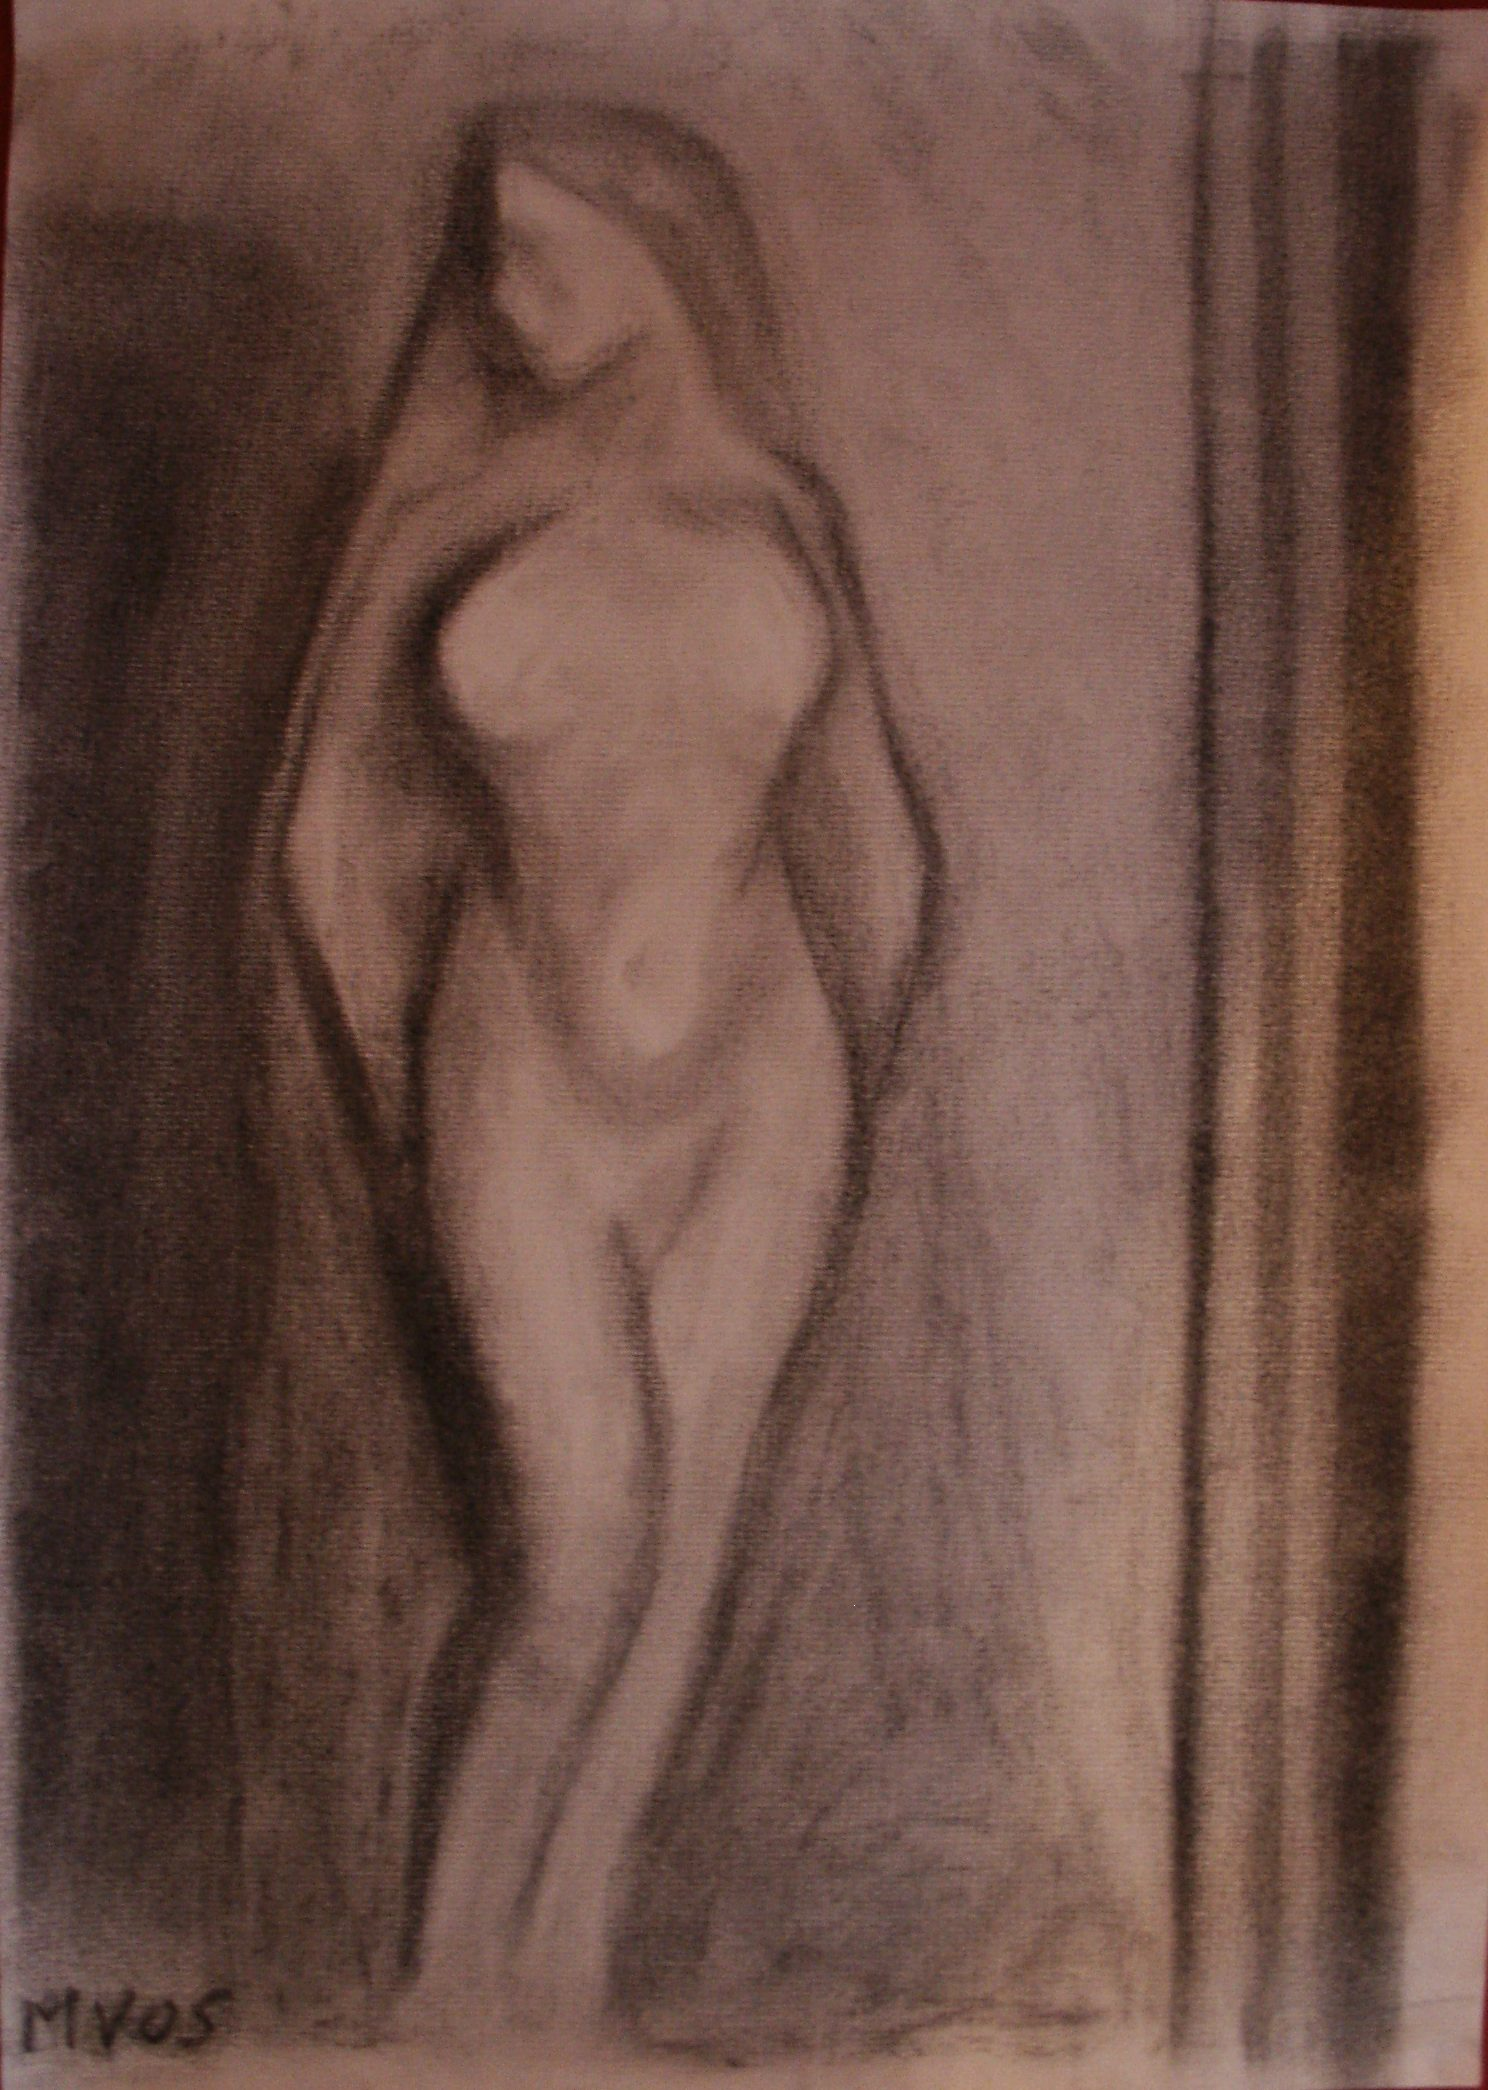 The Woman charcoal drawing